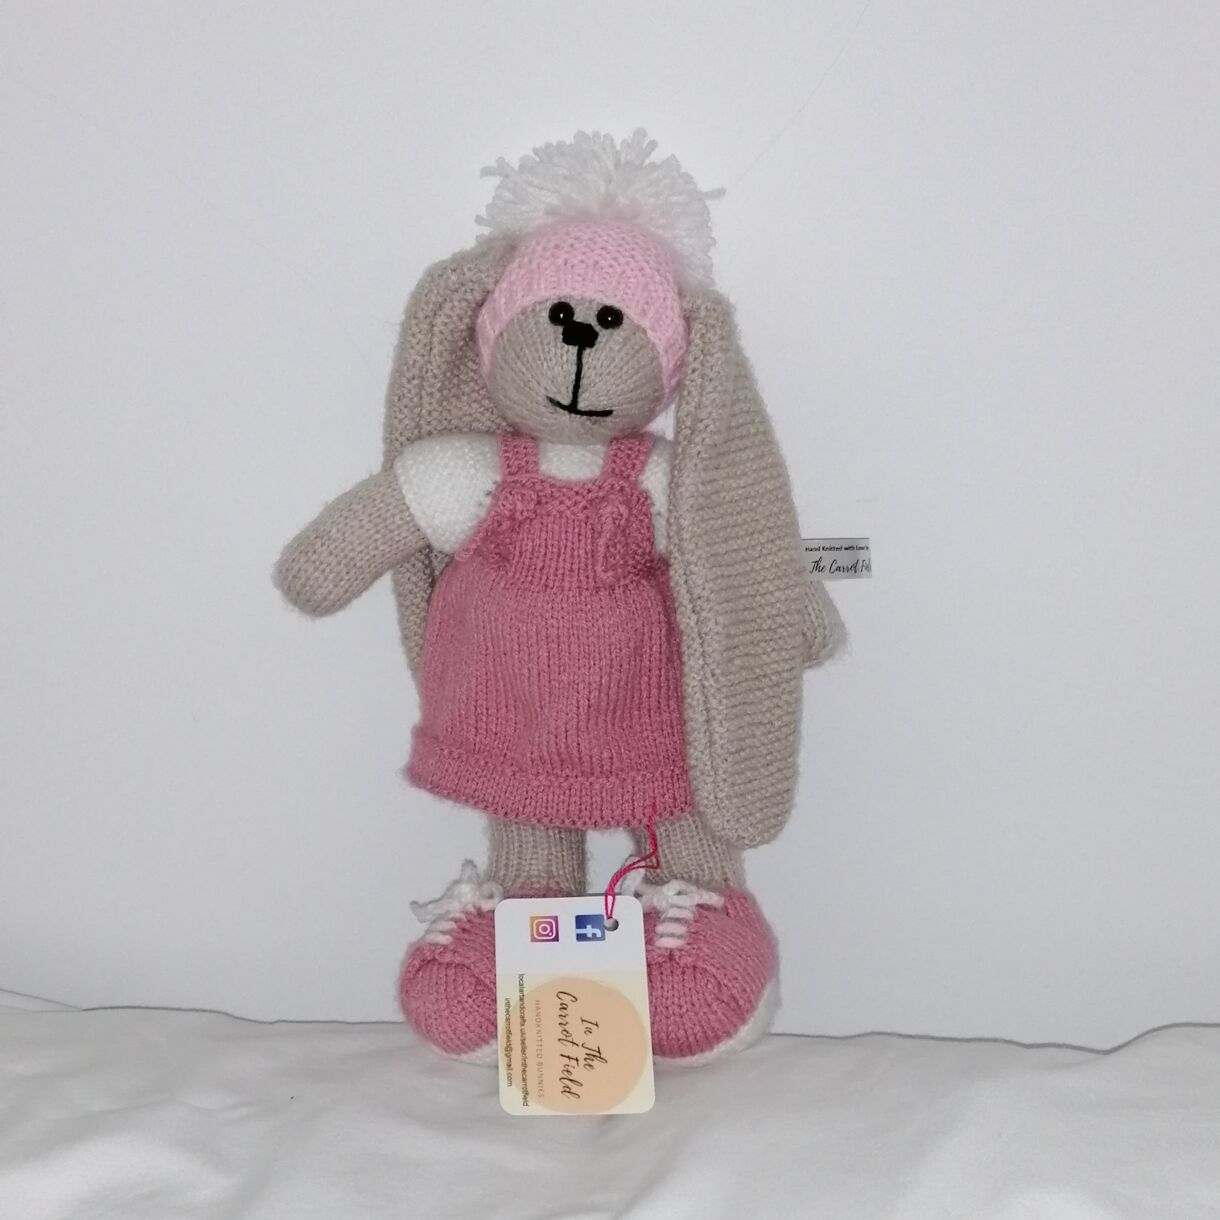 Beautifully Hand Knitted Bunny Girl in a Rose Pink Pinafore and Shoes and a Co-ordinated Hat and Hooded Jacket